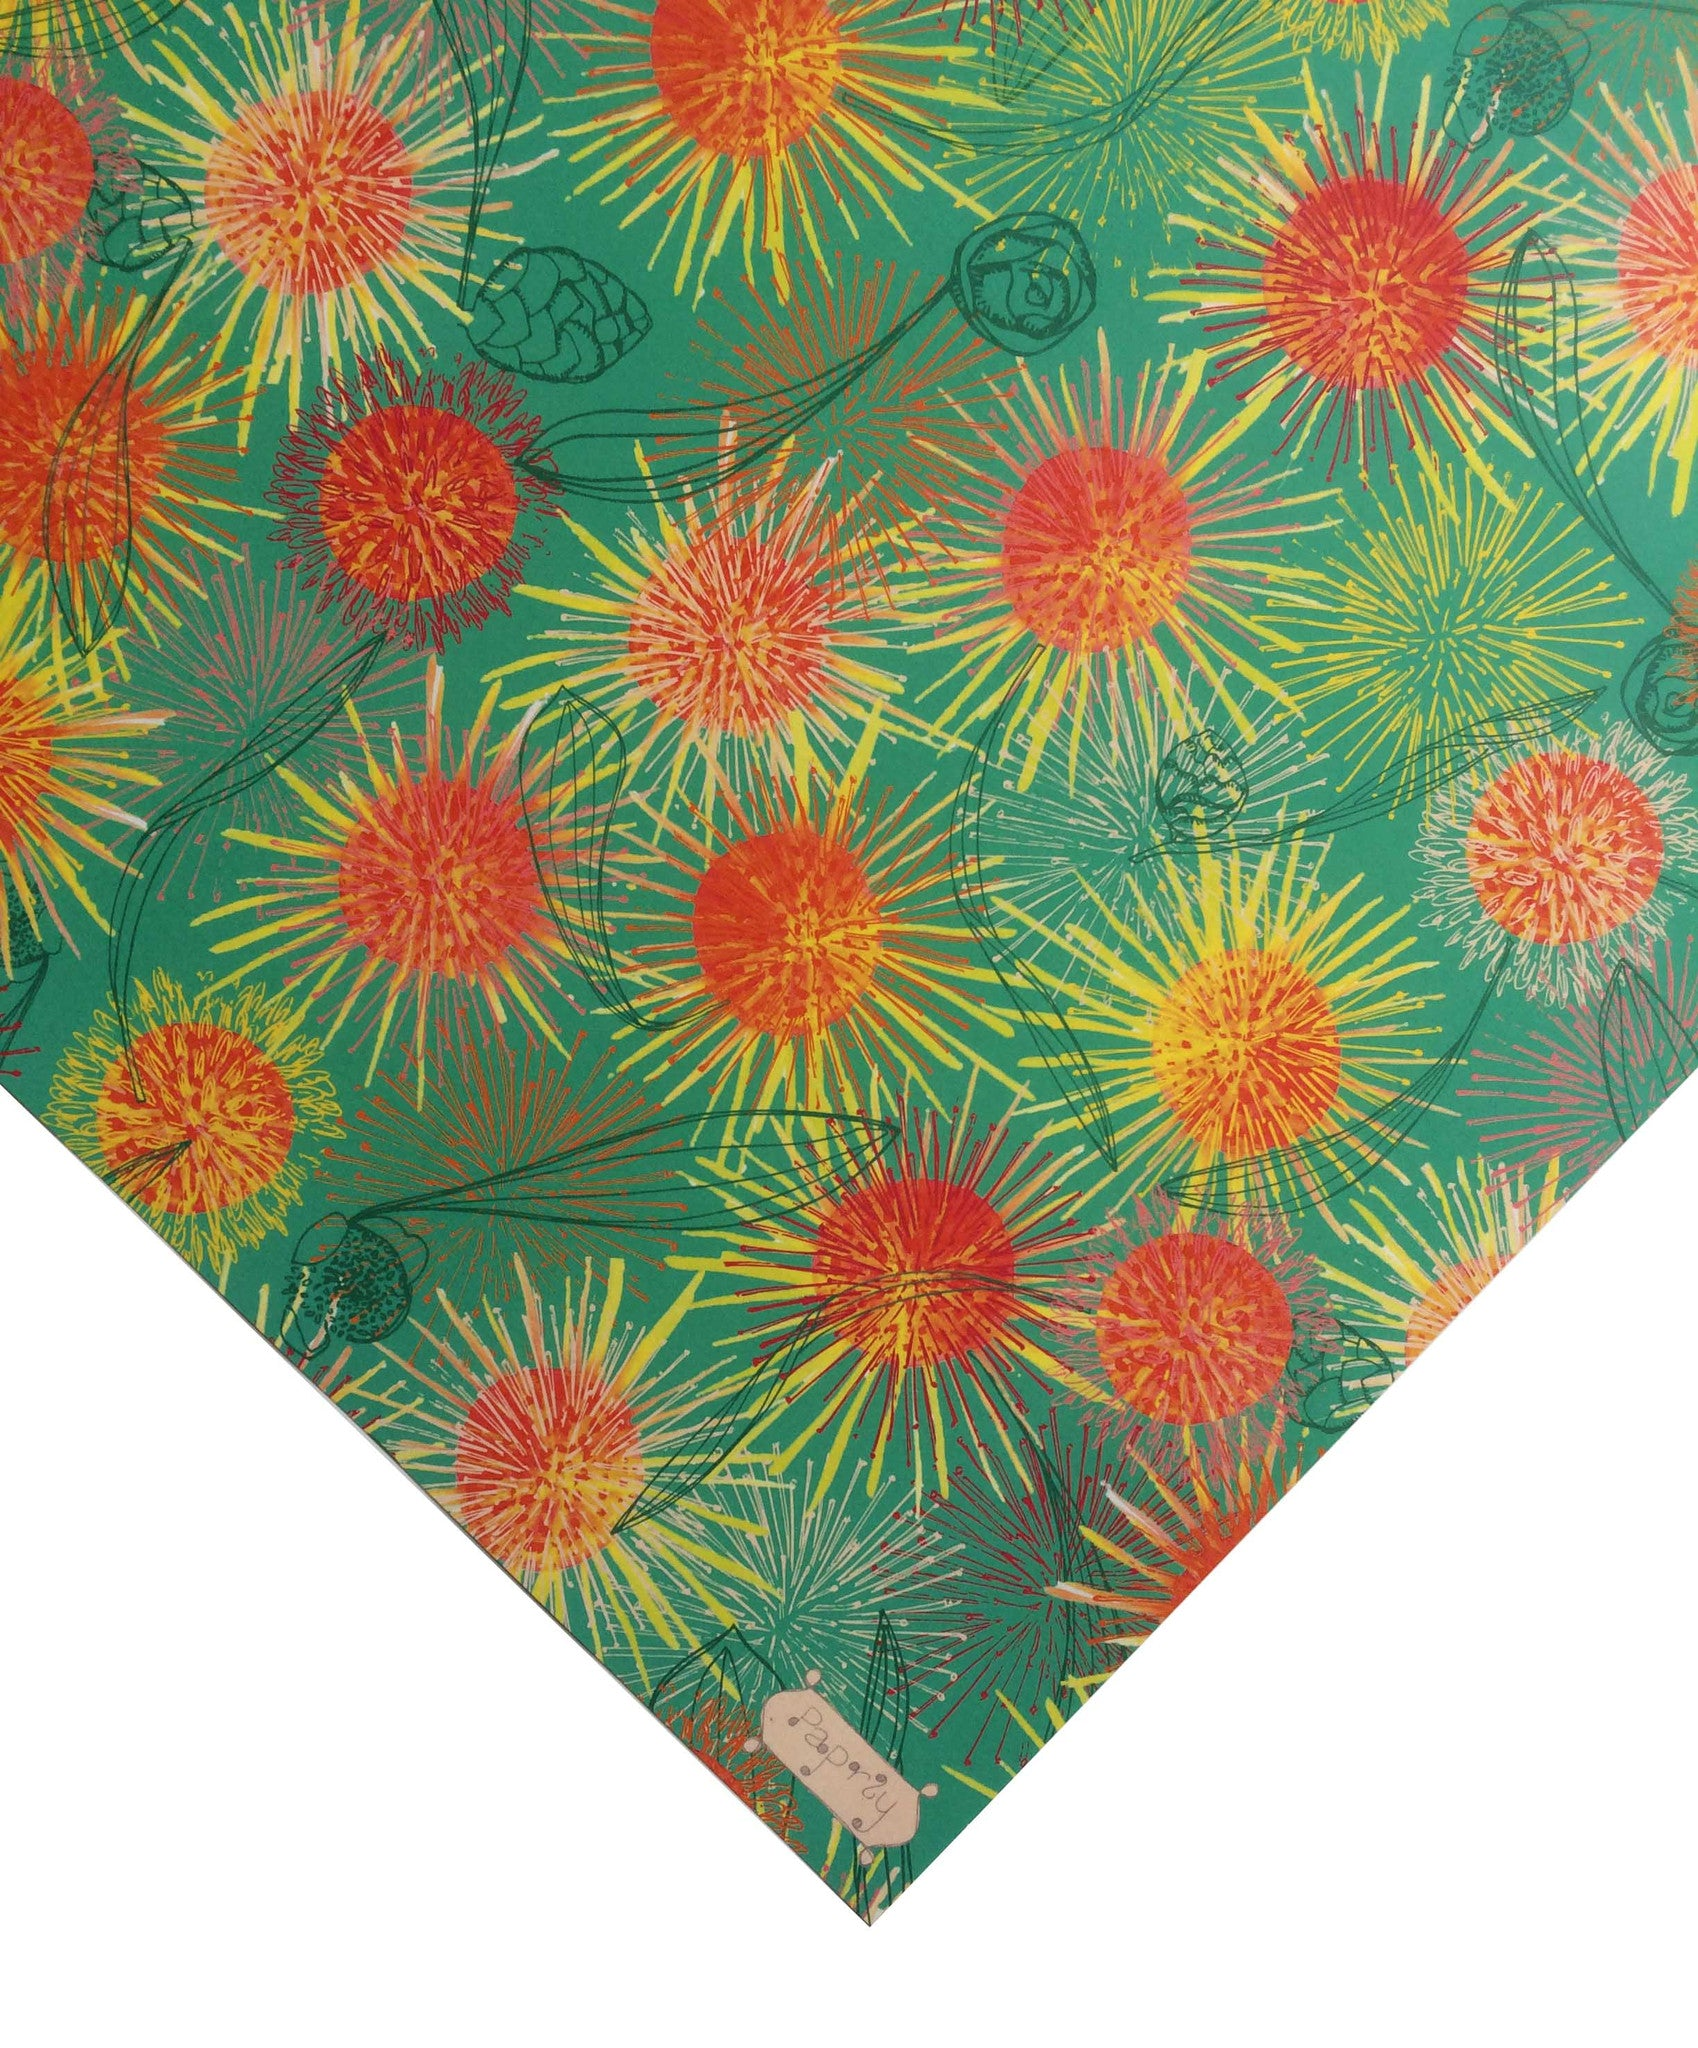 Hakea fireworks flower gift wrapping paper paprly hakea fireworks flower gift wrapping paper mightylinksfo